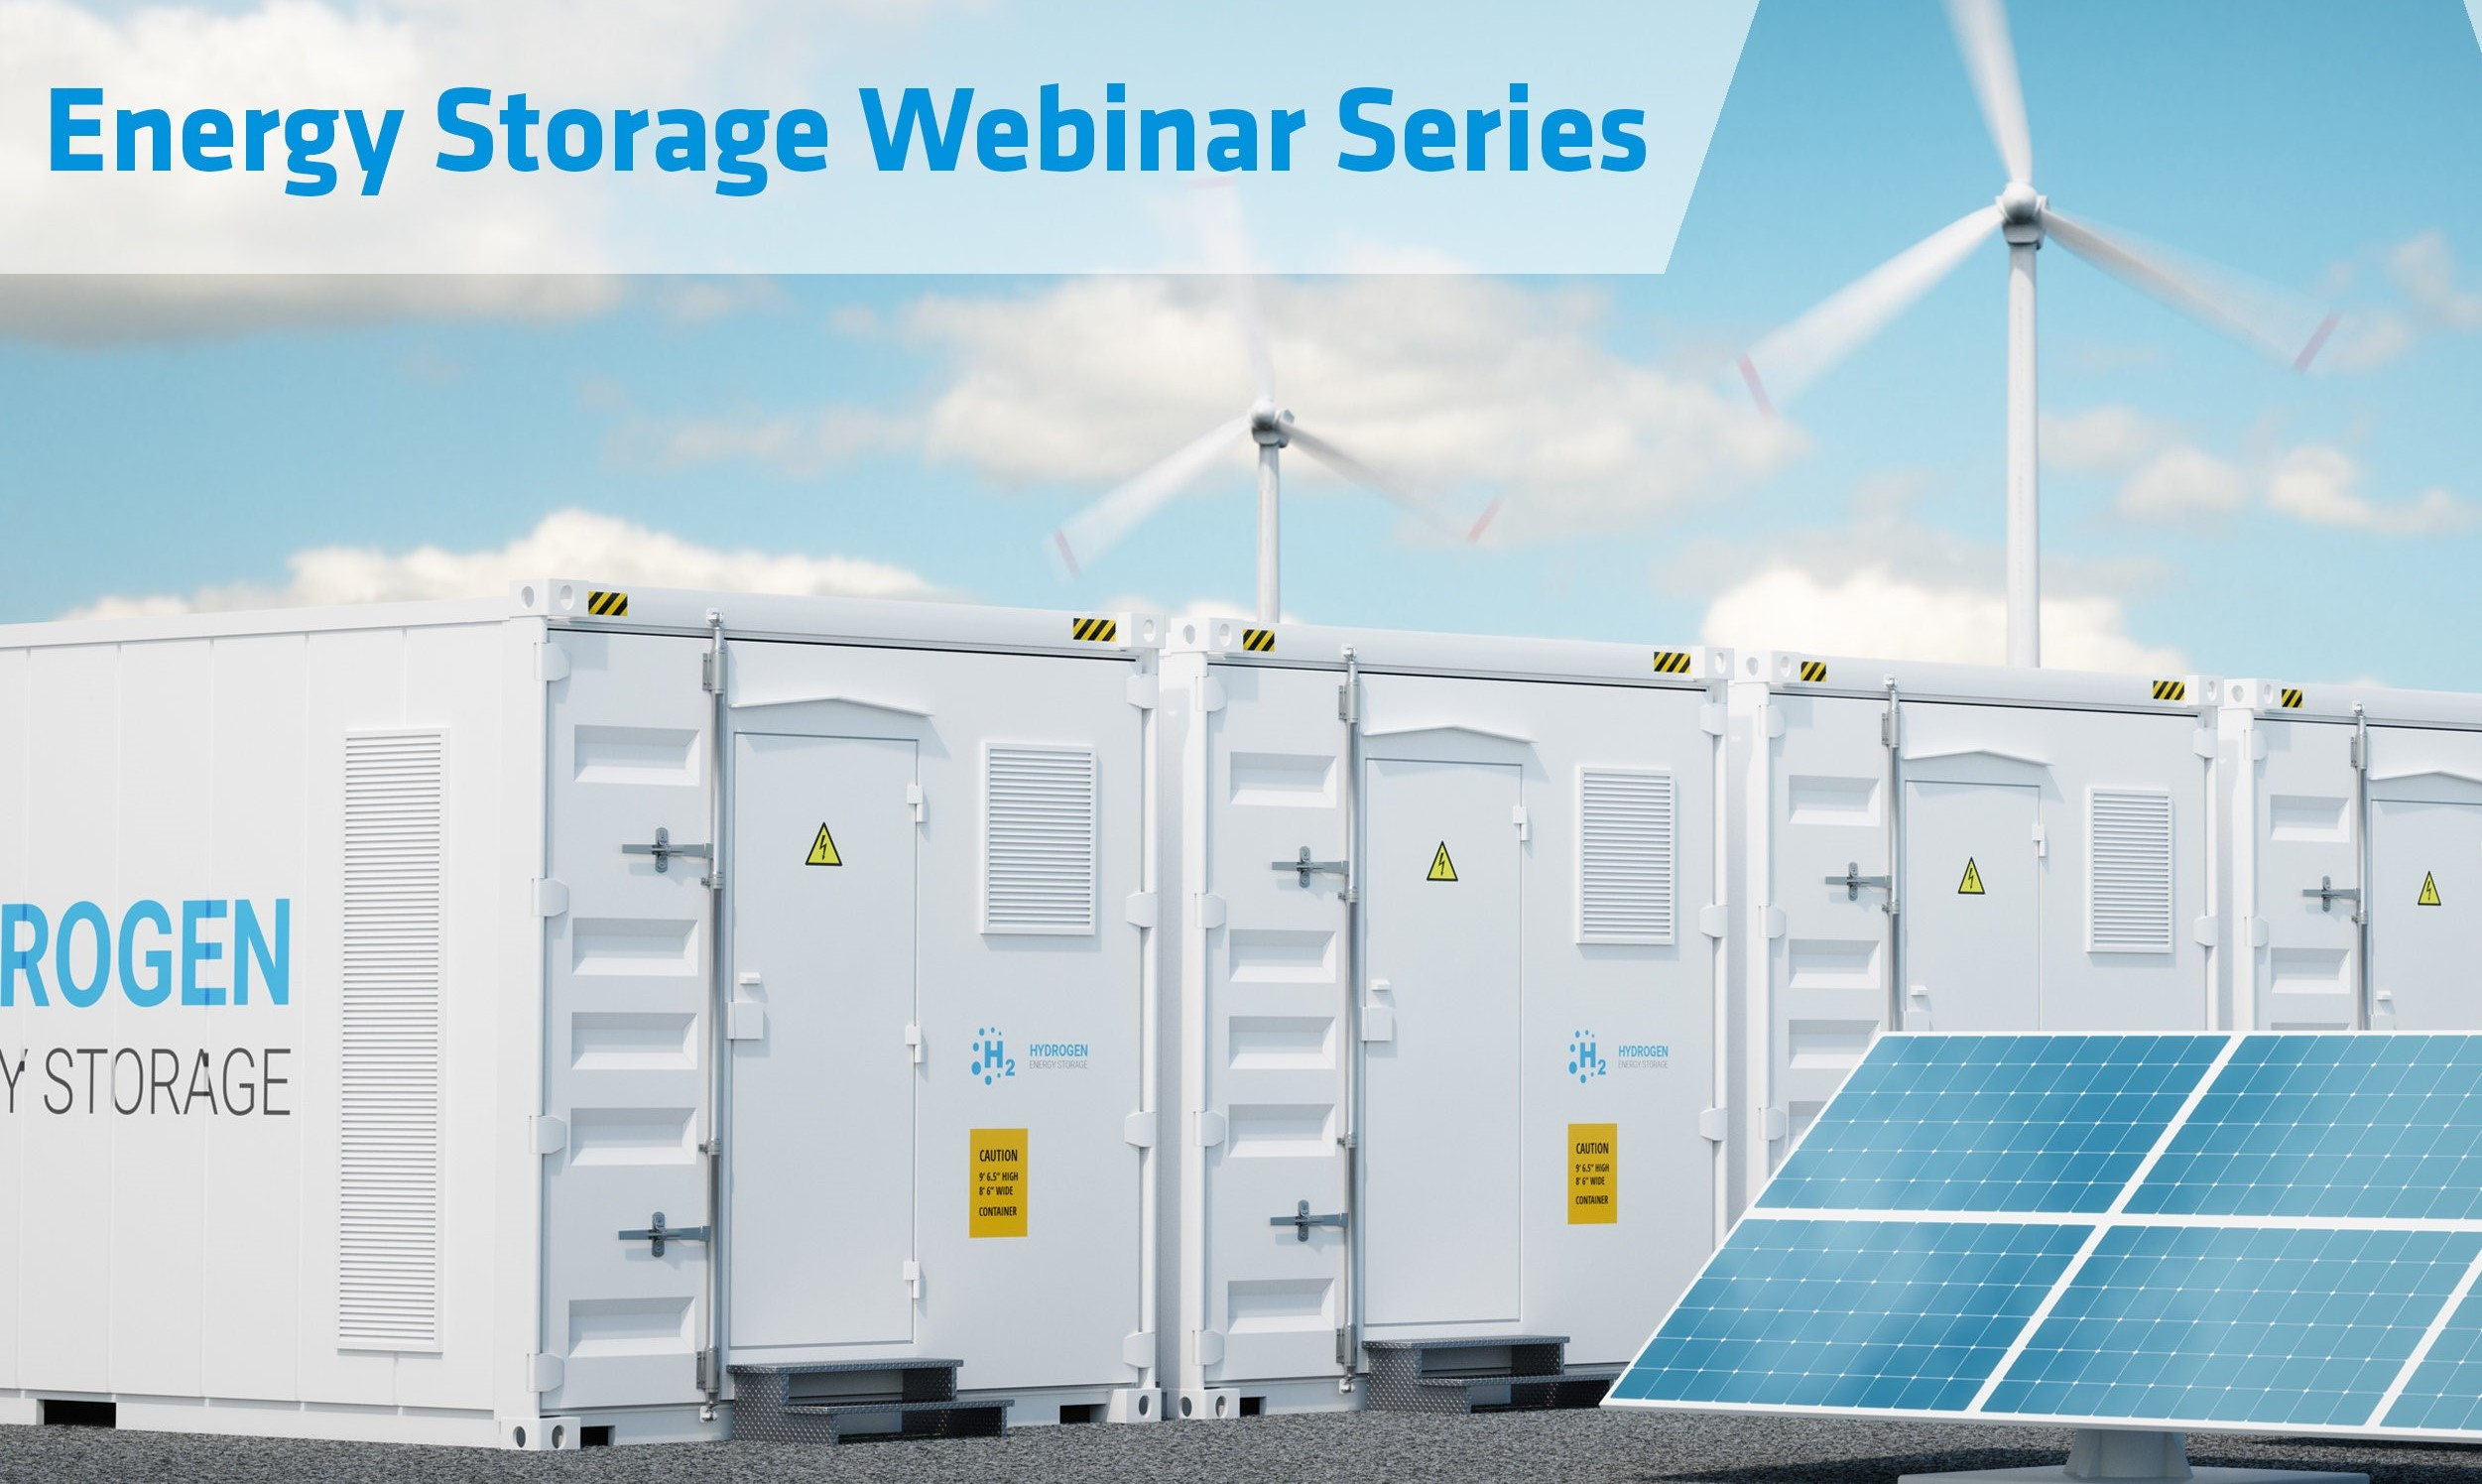 New Webinar Series Highlights Role of Energy Storage in Future Electric Power Sector